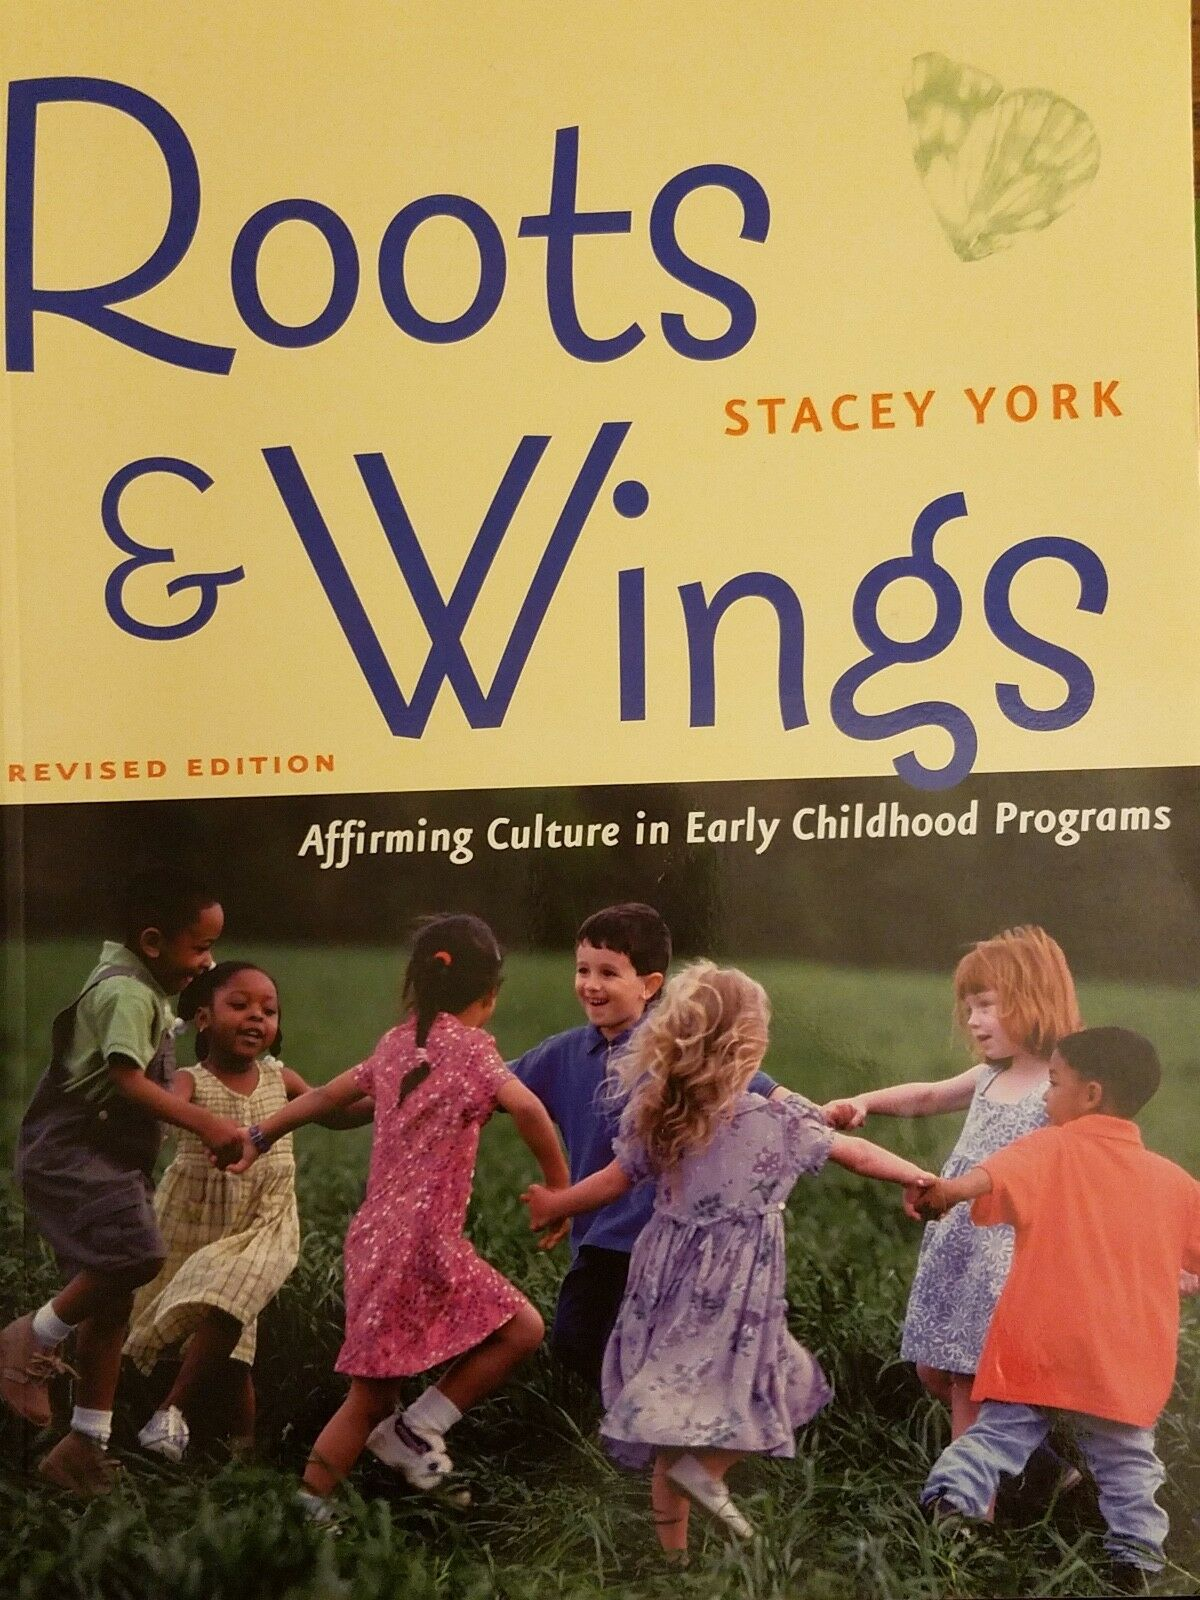 roots and wings revised edition york stacey